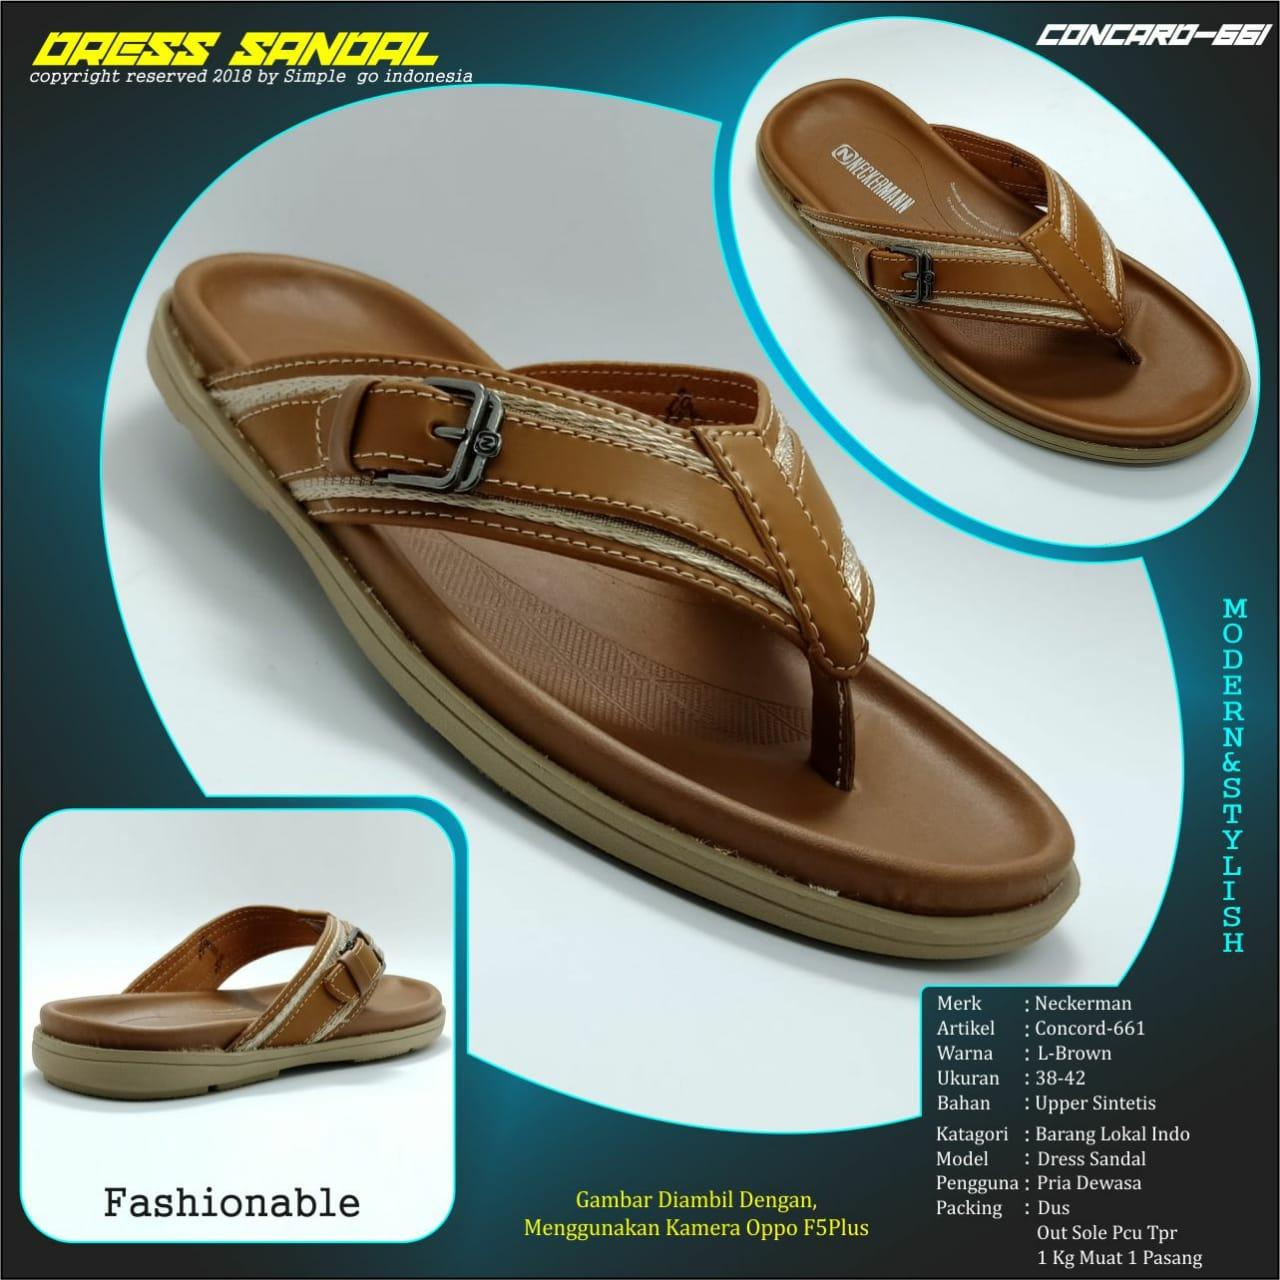 Neckermann Sandal Pria Eden 044 Ivory Shopee Indonesia Source · Neckerman sandal casual pria concord 661 brown 38 43